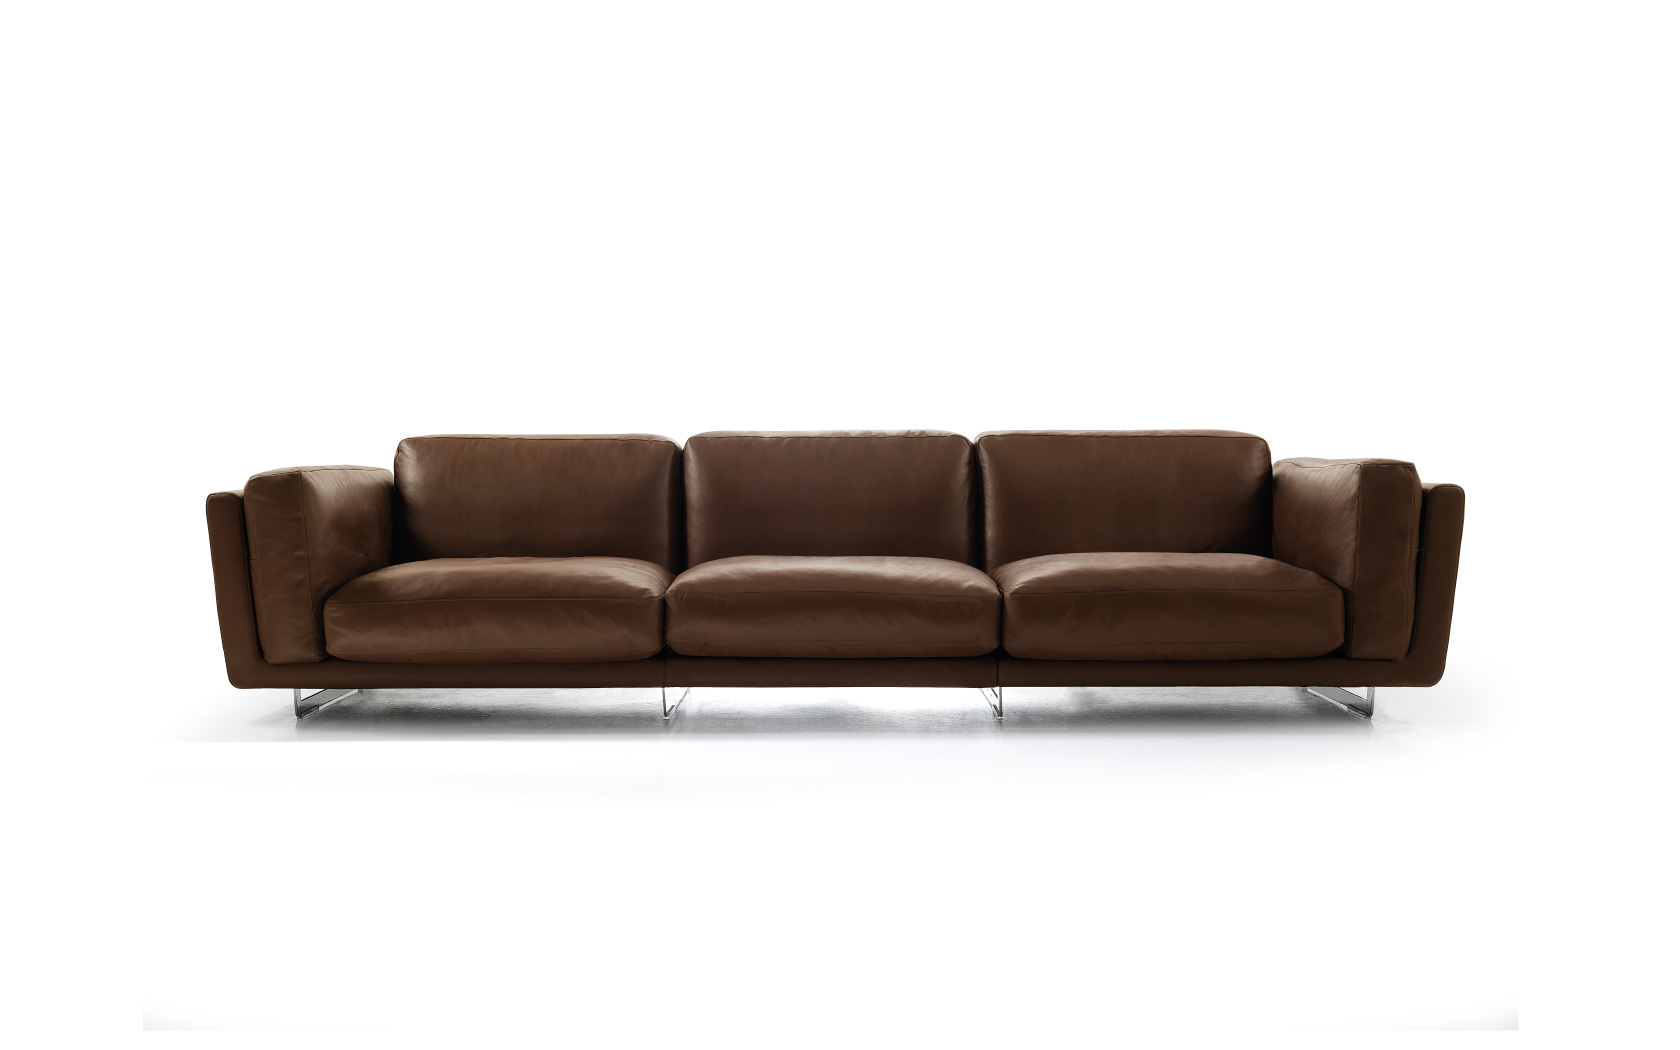 Groovy Cooper Leather Sofa Mscape Modern Interiors Andrewgaddart Wooden Chair Designs For Living Room Andrewgaddartcom